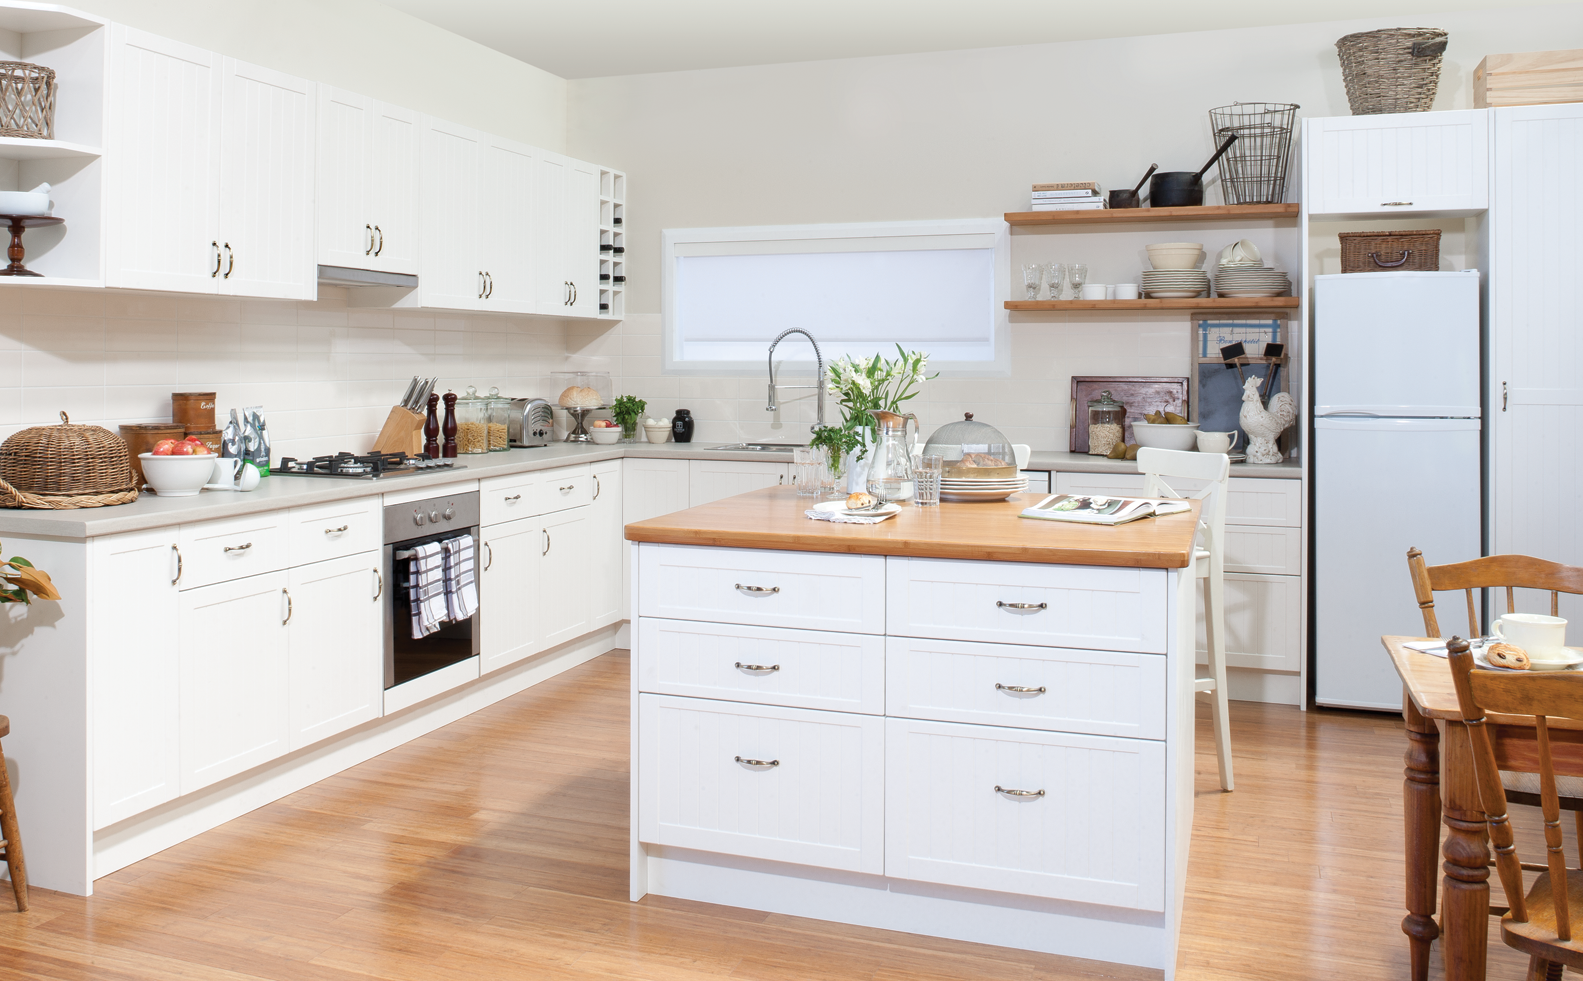 Superieur Kitchen Inspiration Gallery | Bunnings Warehouse